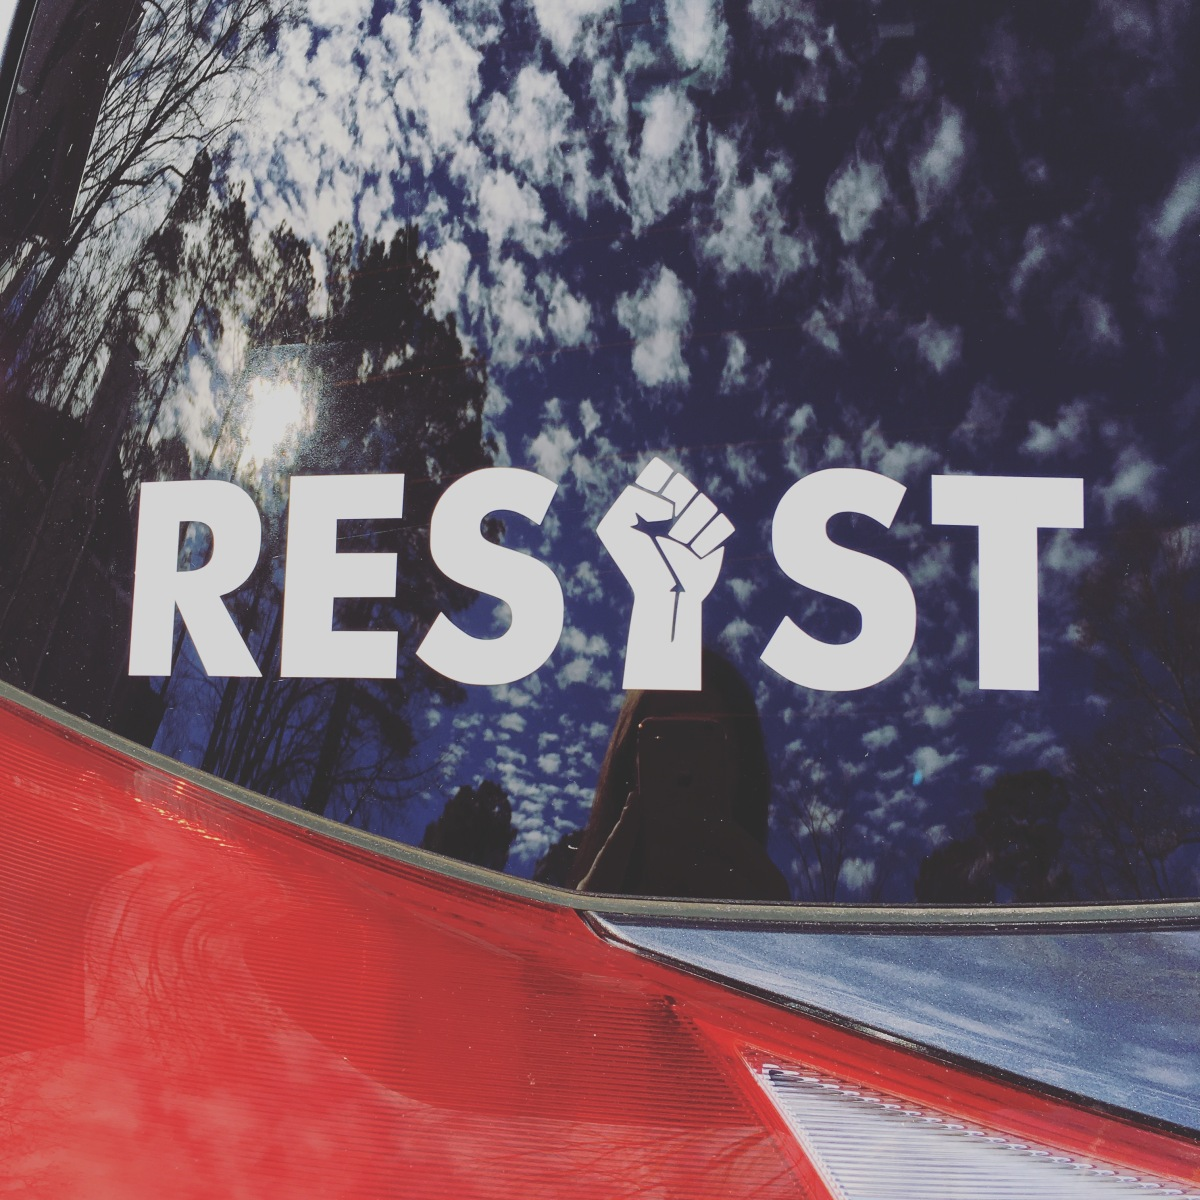 Coexist or Contradict? How about Resist Instead by Katey Zeh